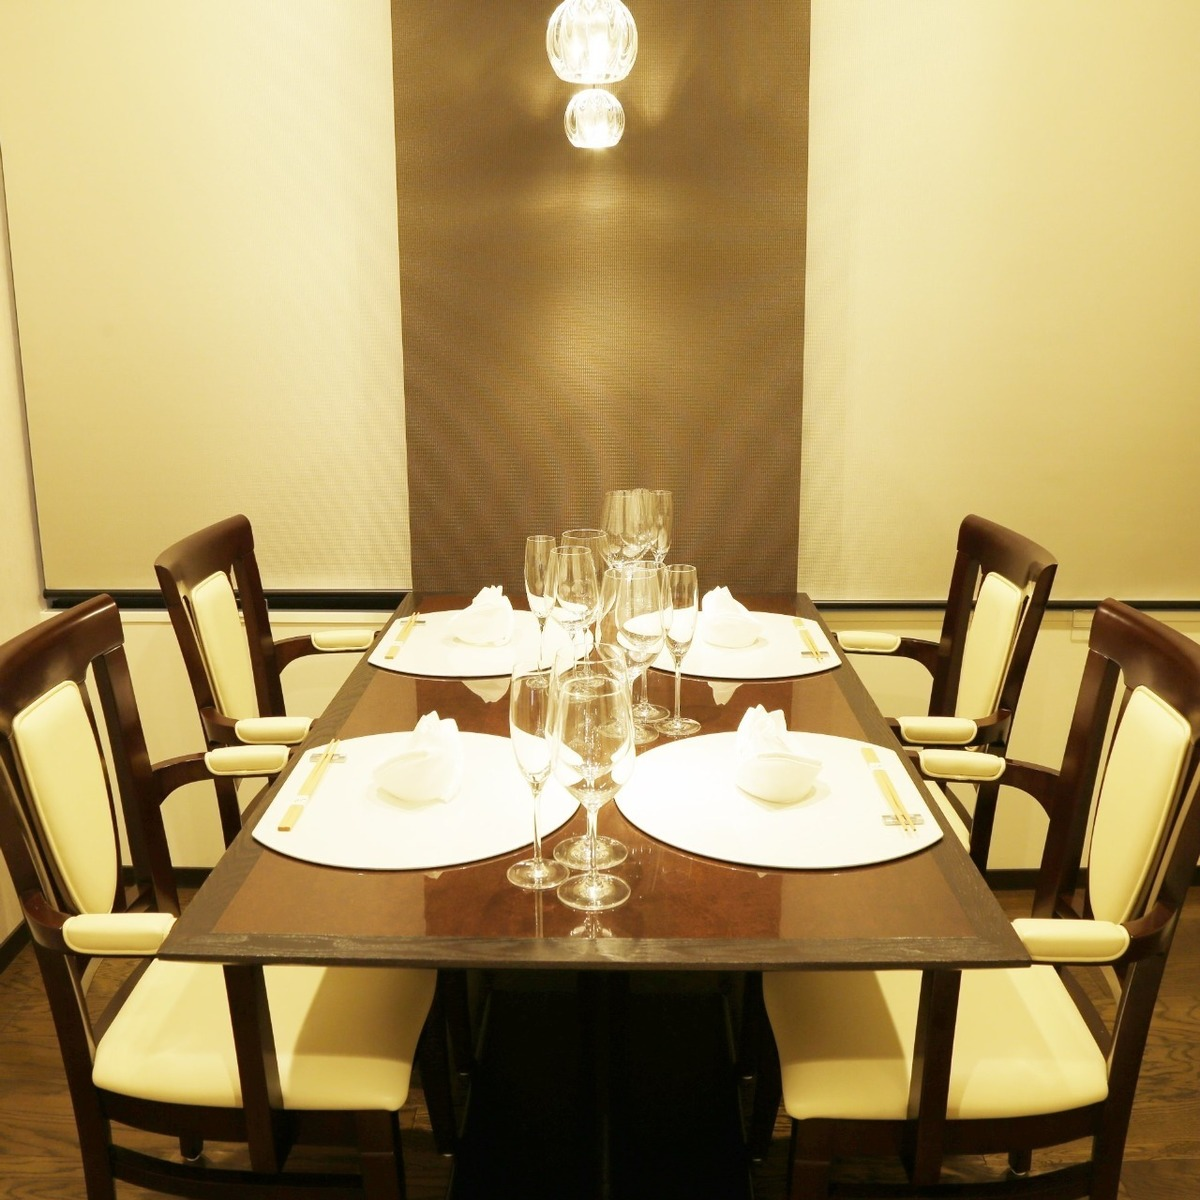 Private room 【皐】 (3 to 4 people) Suitable for entertainment, business meals Food can be eaten without worrying around in the calm lighting.Charging fee is 10% of food charge / smoking allowed